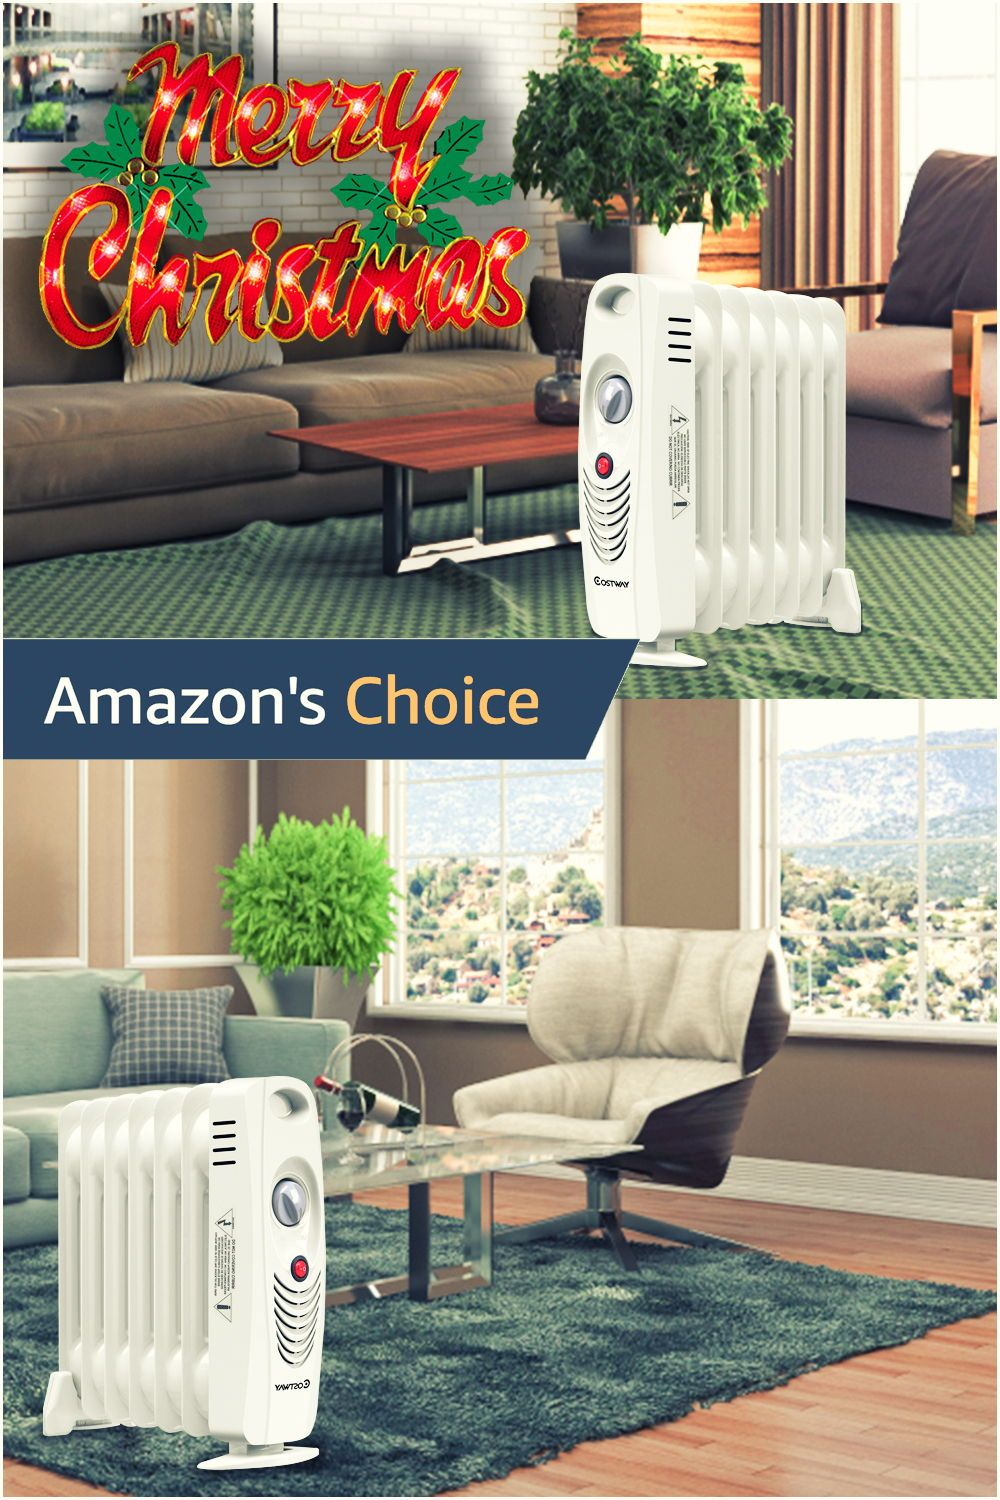 Top 10 Oil Filled Radiant Heaters Dec 2019 Reviews And Buyers Guide Radiant Heaters Oil Heater Oil Filled Radiator